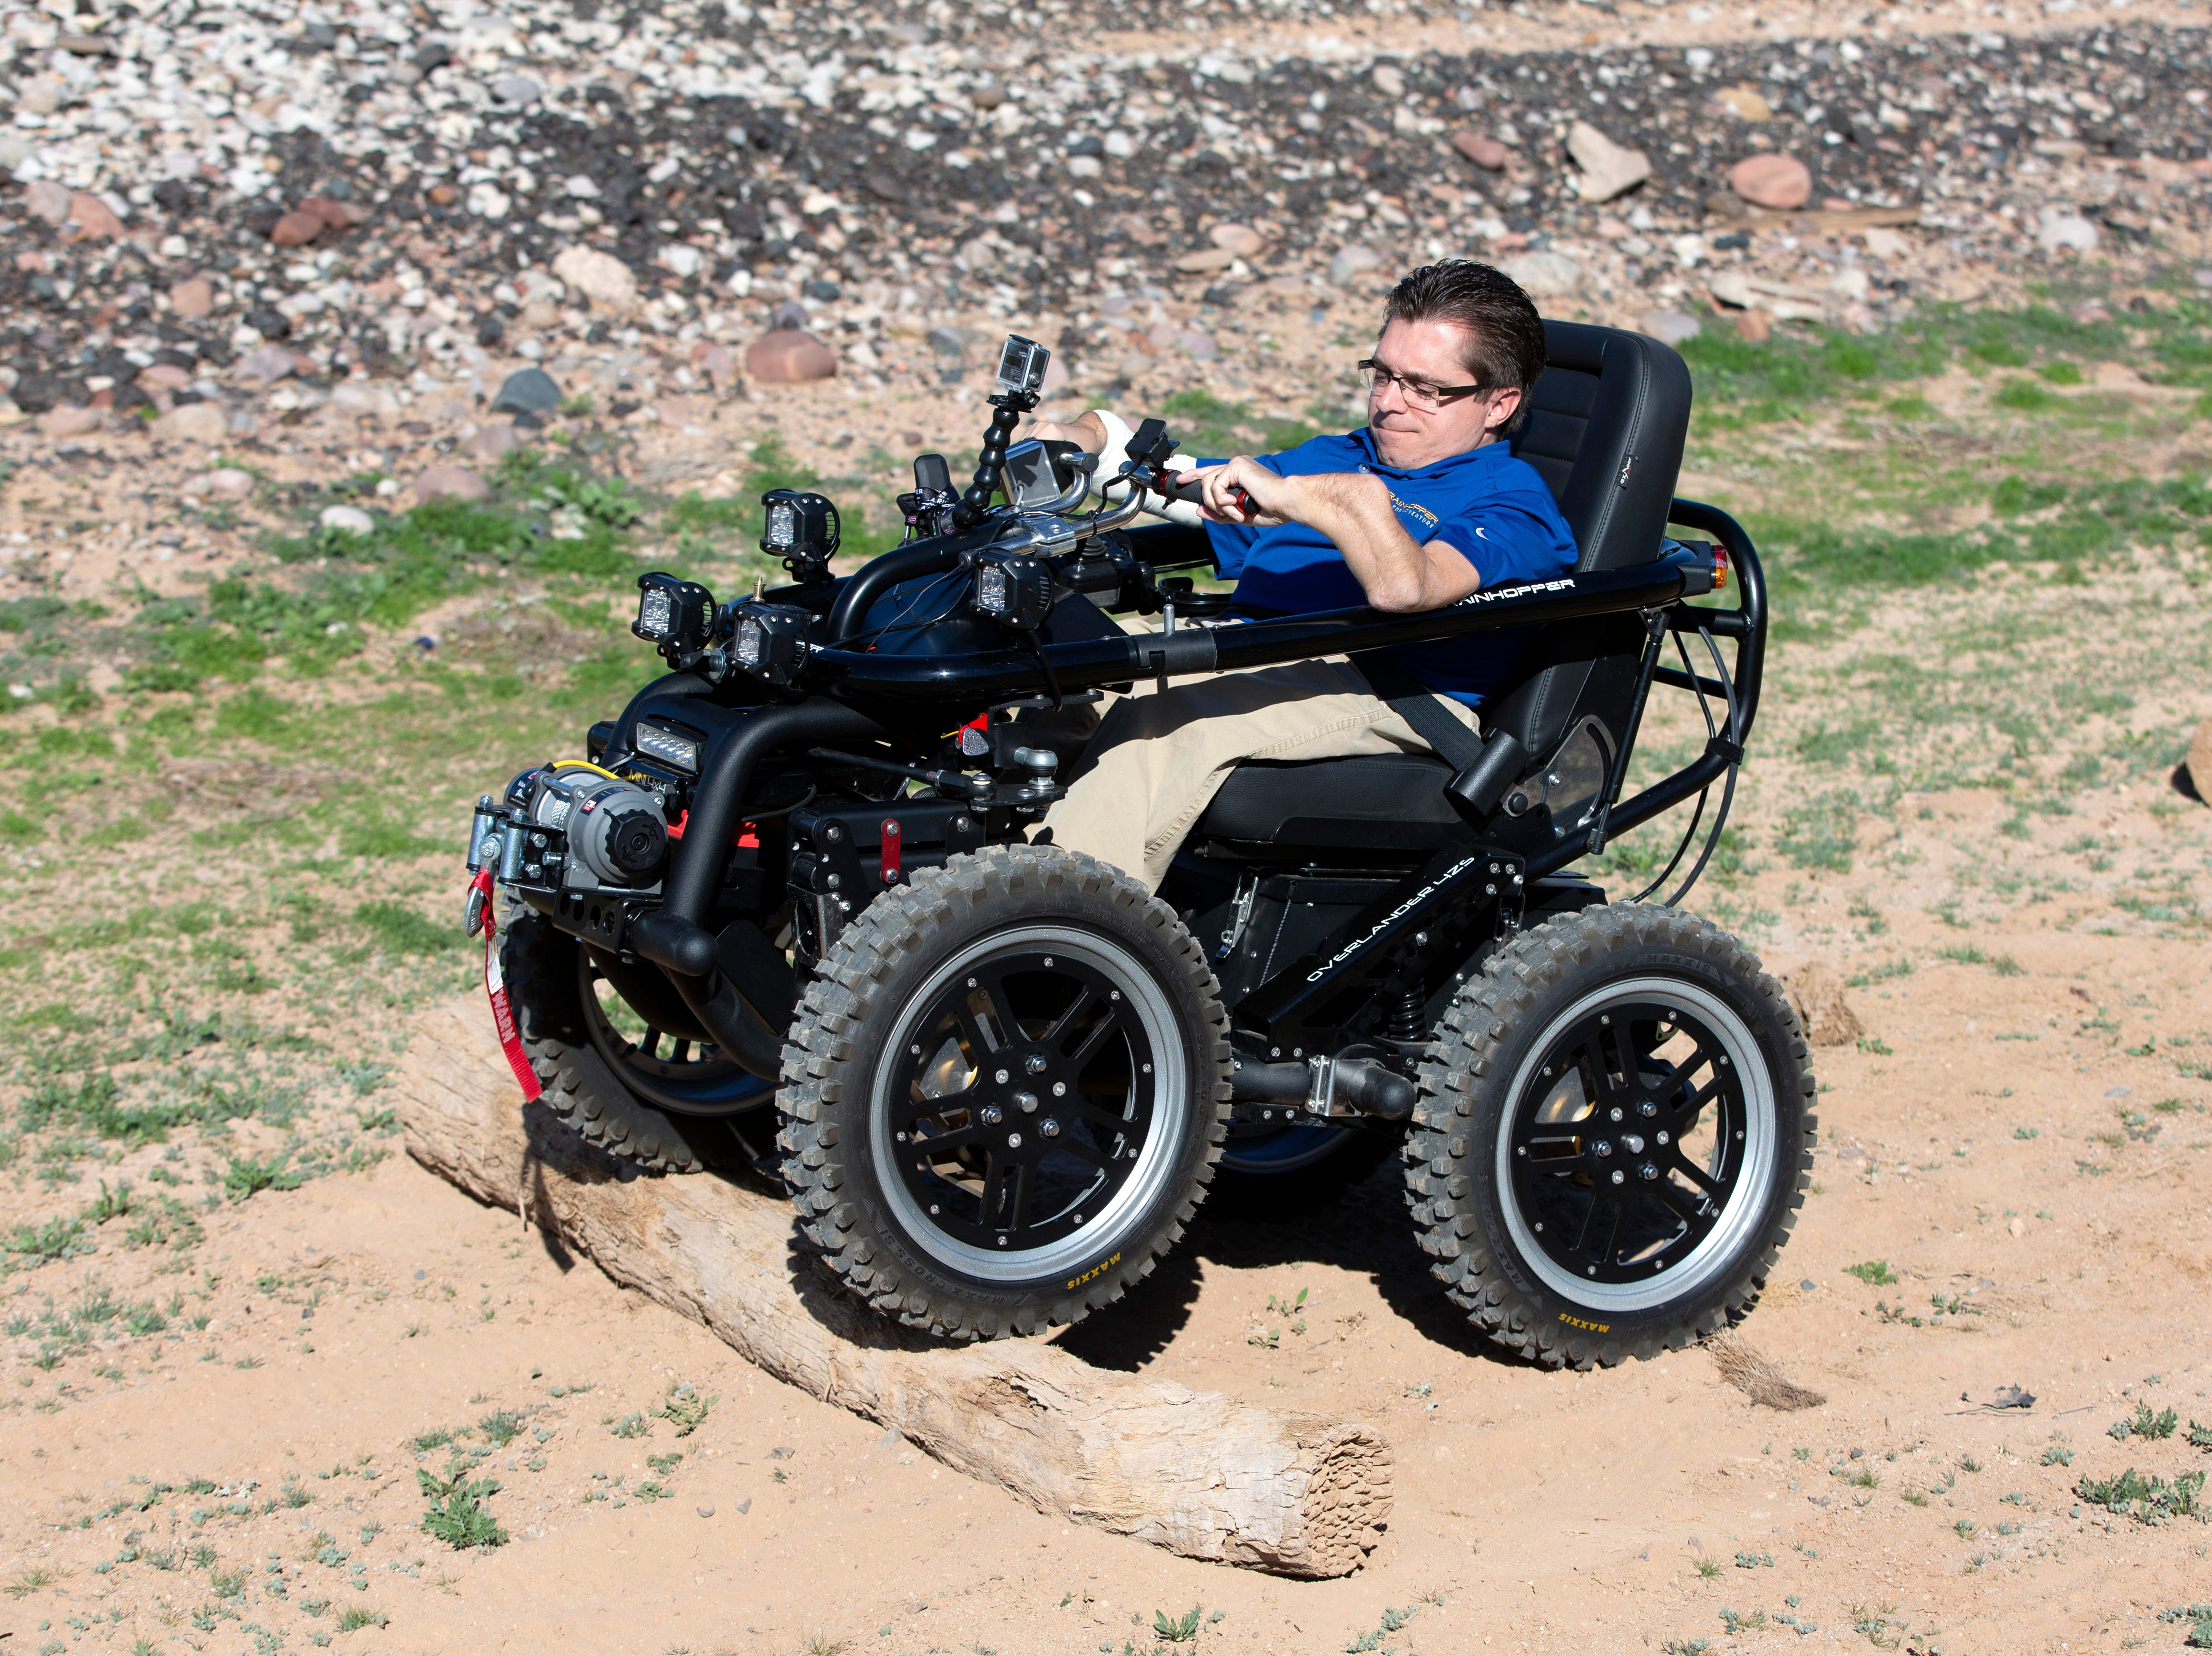 Todd Lemay, owner of TerrainHopper USA in Tempe, demonstrates how the all-terrain vehicle works for people with disabilities or everyday mobility issues.